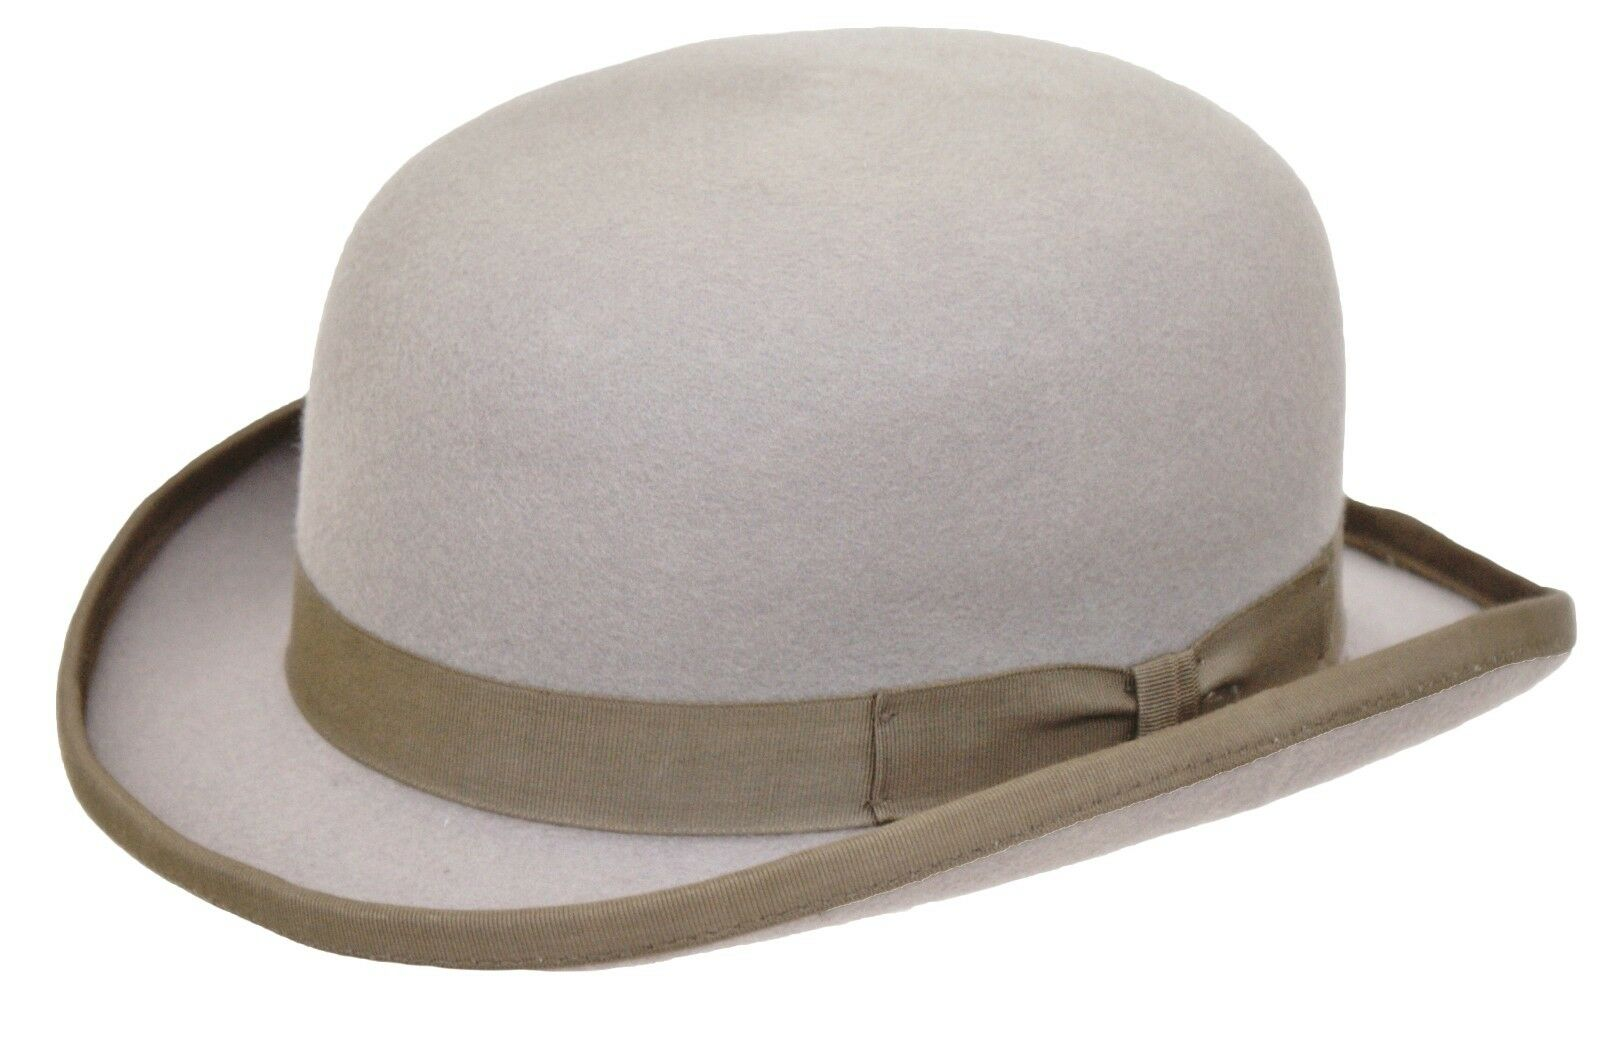 High Quality GREY Hard Top 100% Wool Bowler Hat - Satin Lined bf1aff81871c